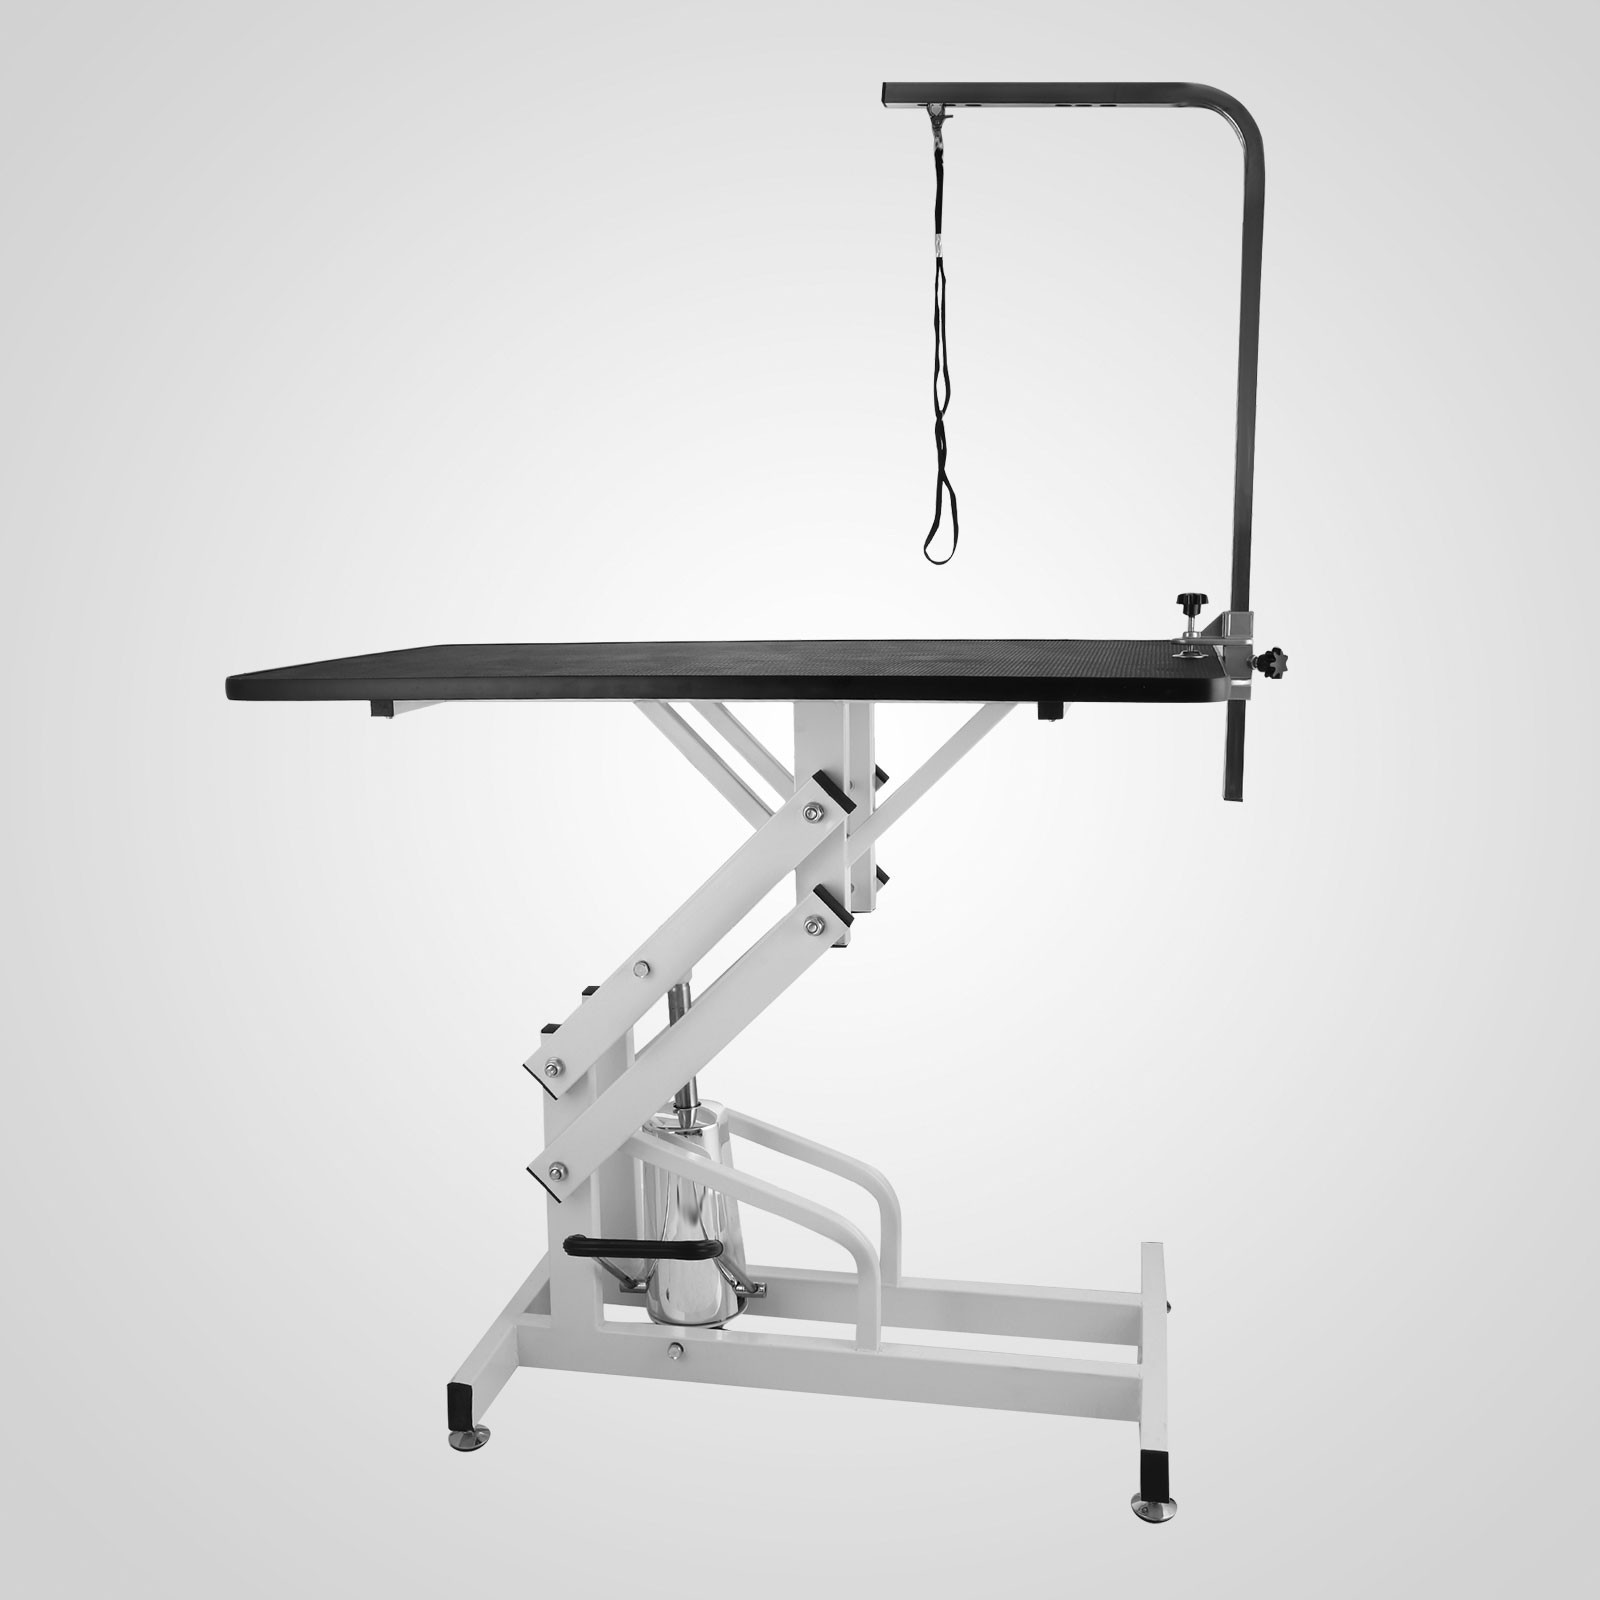 Pneumatic Lifting Arms : Z lift hydraulic dog cat pet grooming table detachable